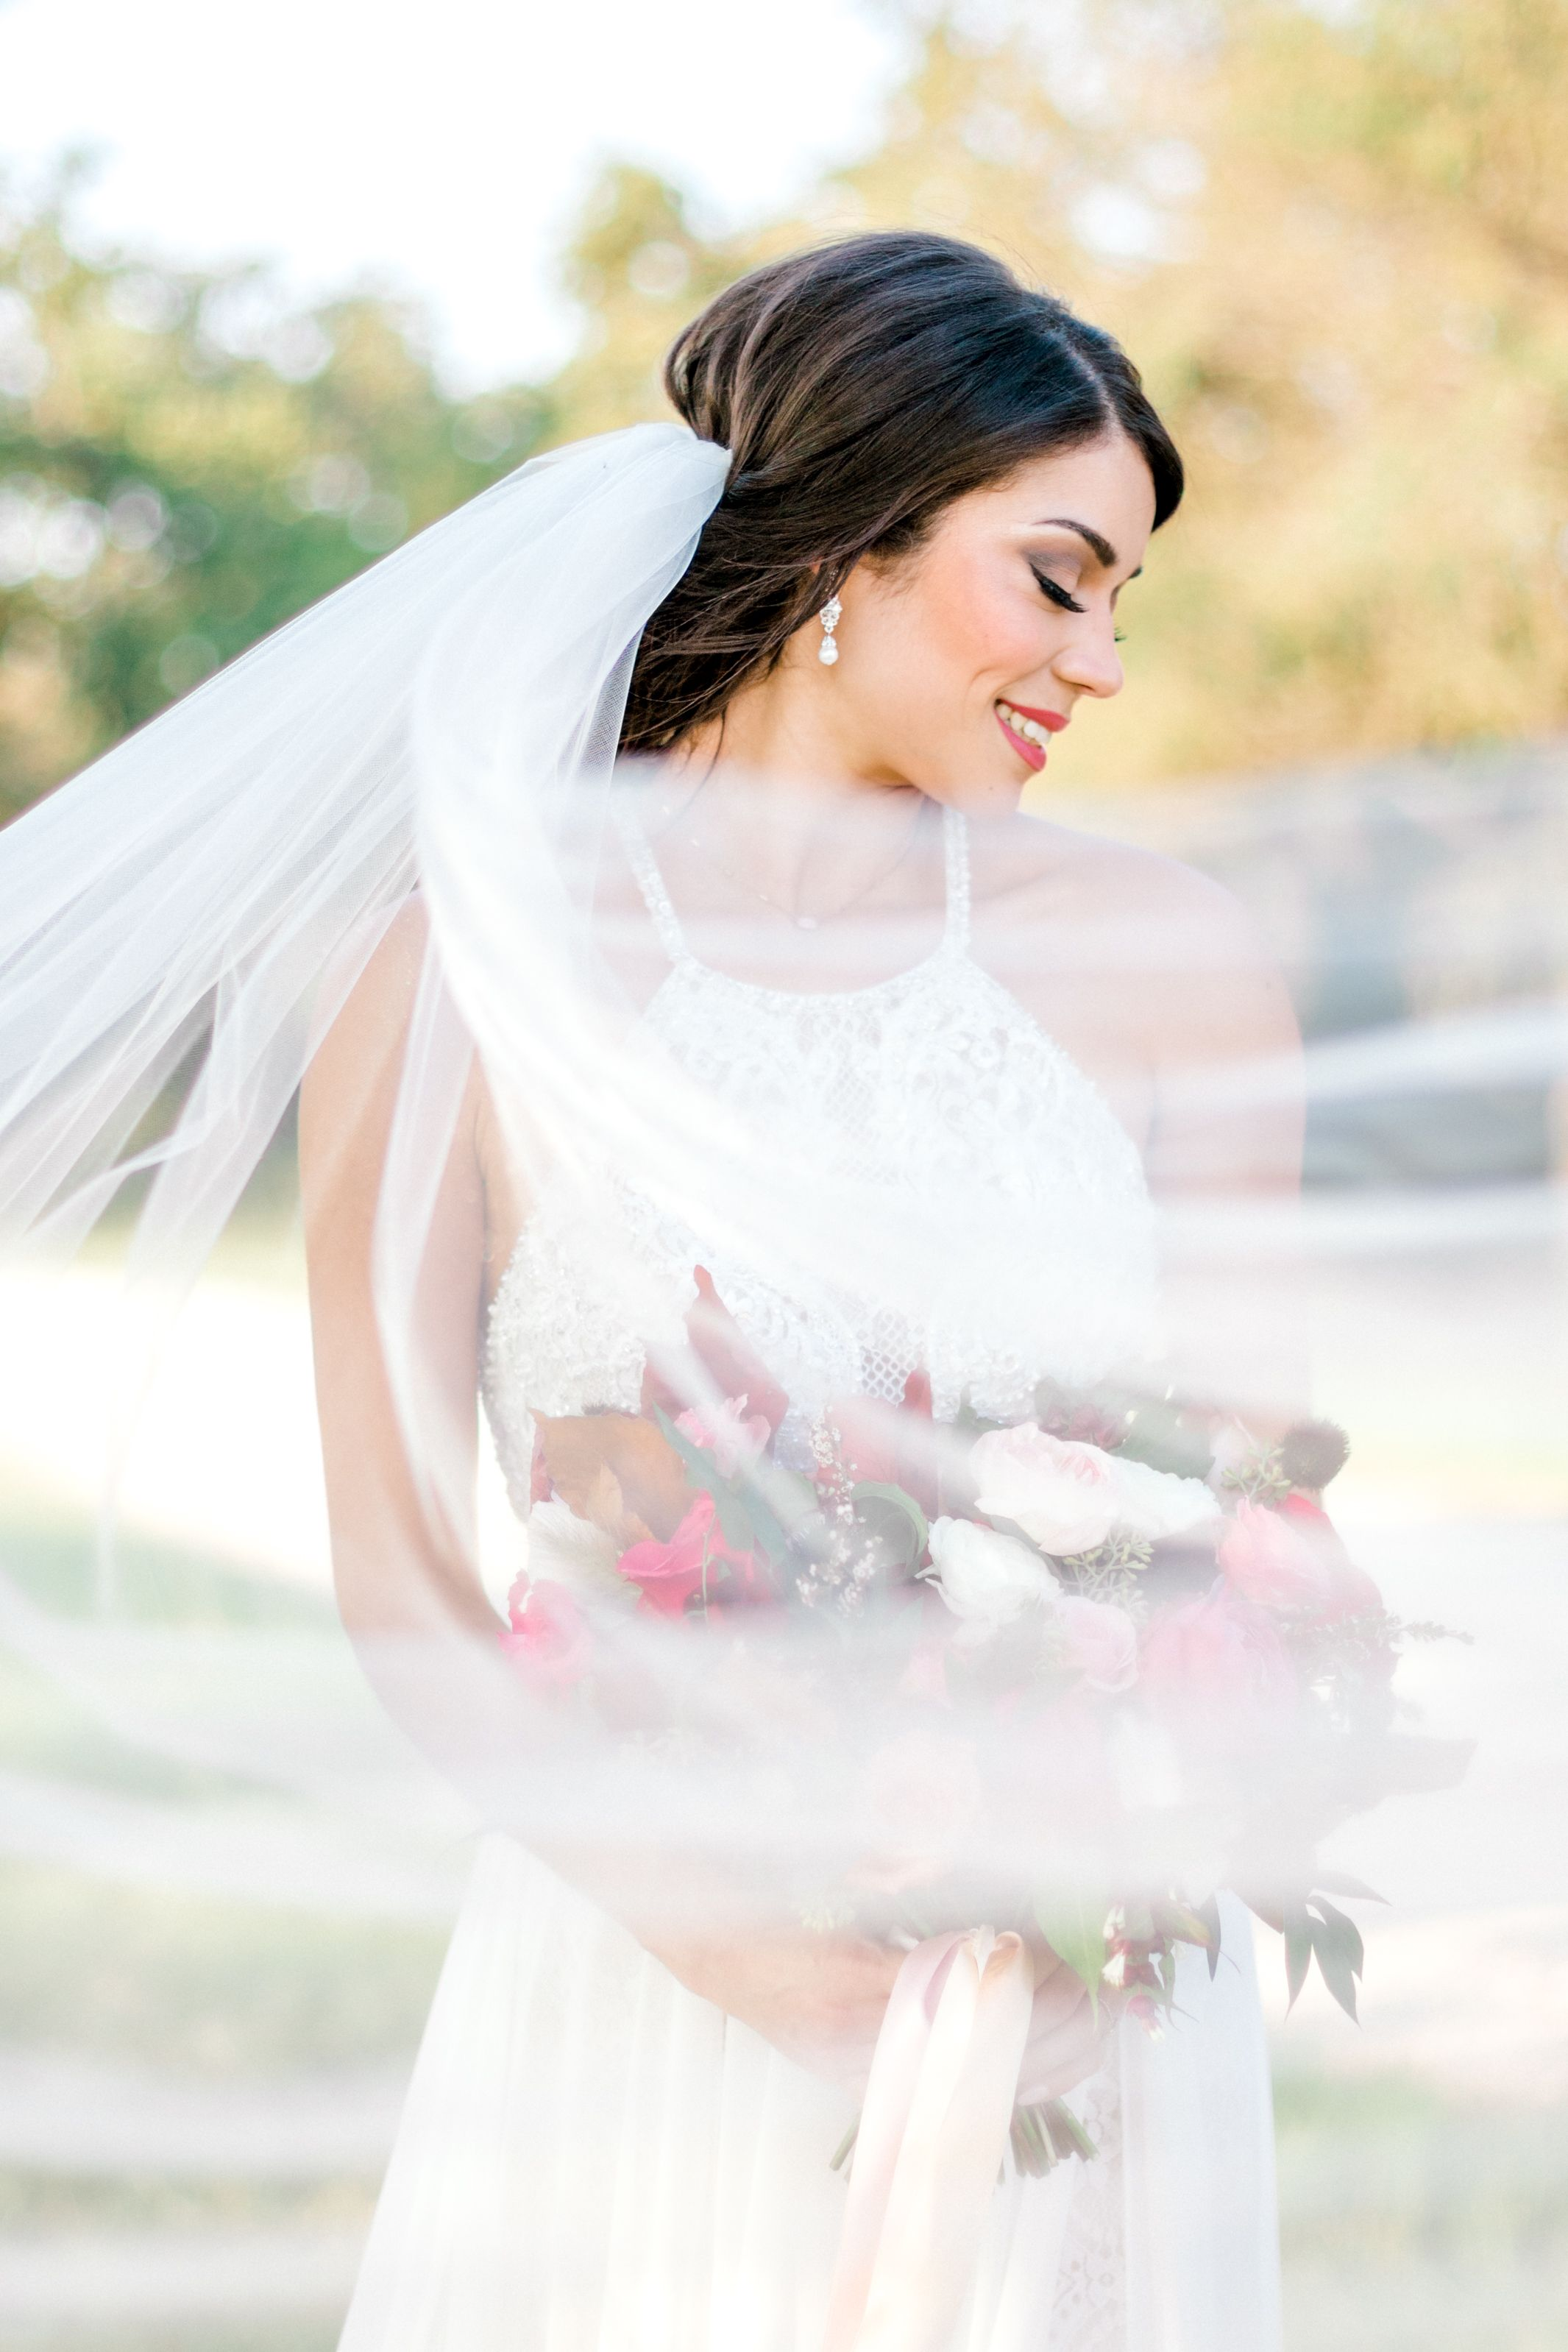 Elizabeth Couch Photography | Dallas Fort Worth Wedding Photographer | bridal photos